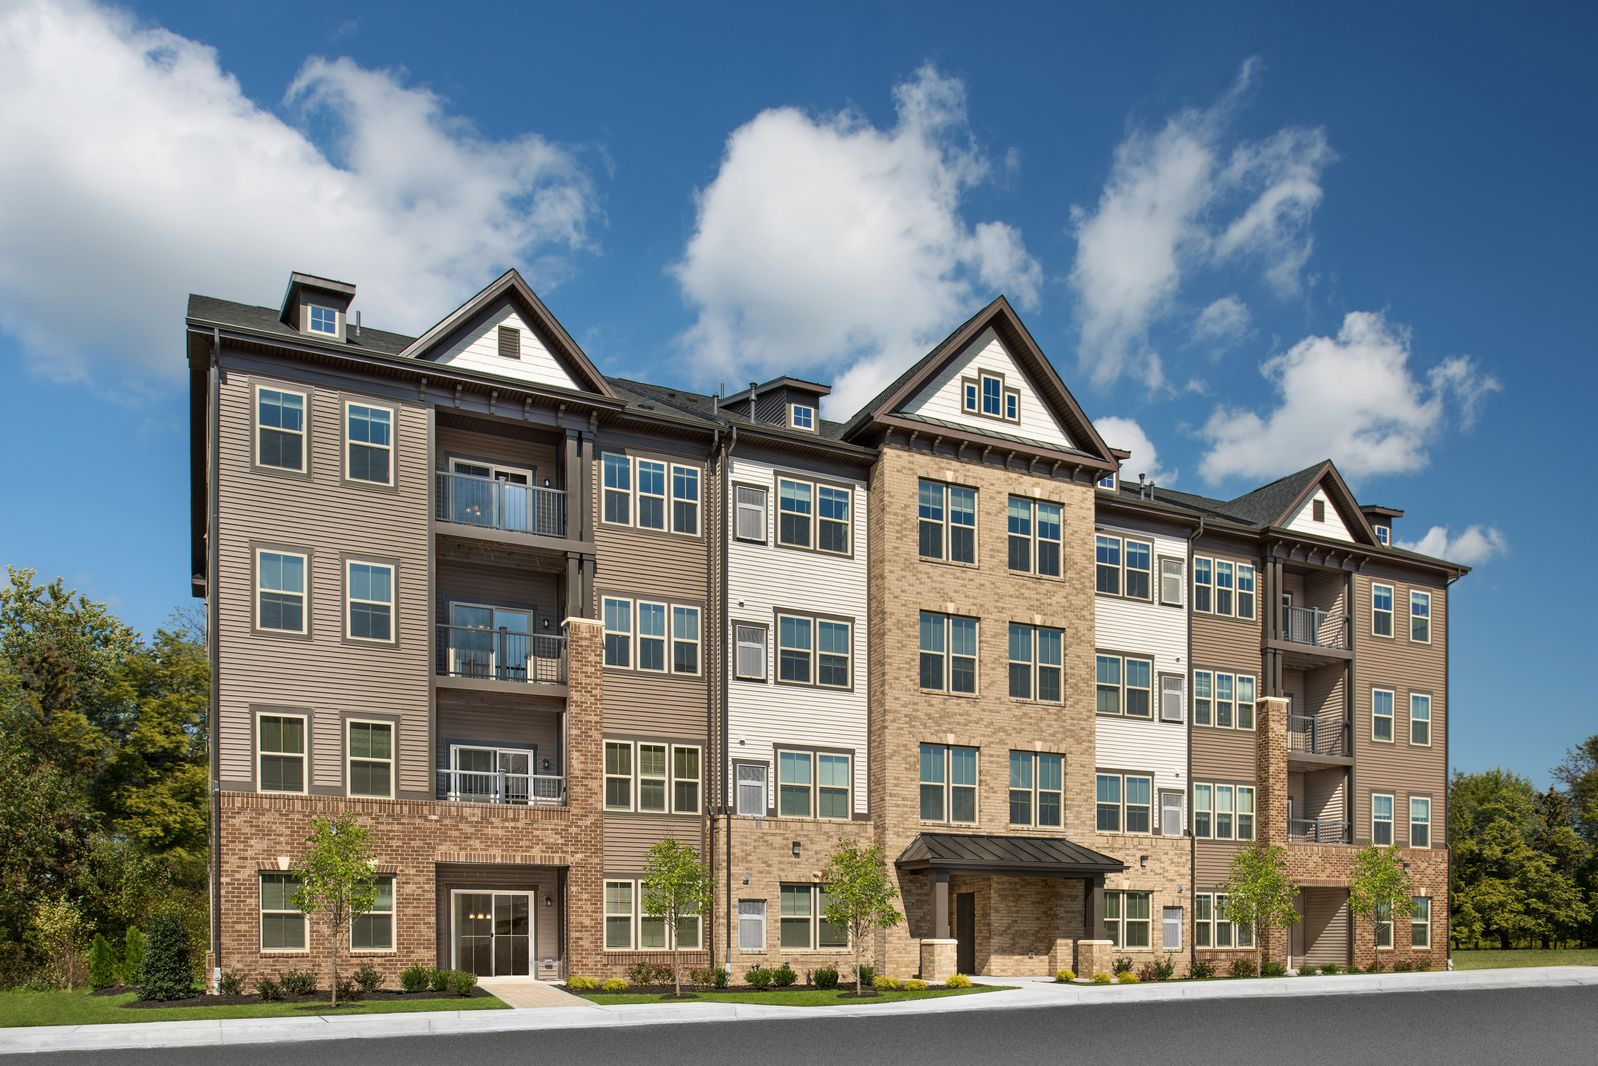 Welcome to the Elevator Condos at Paddock Pointe